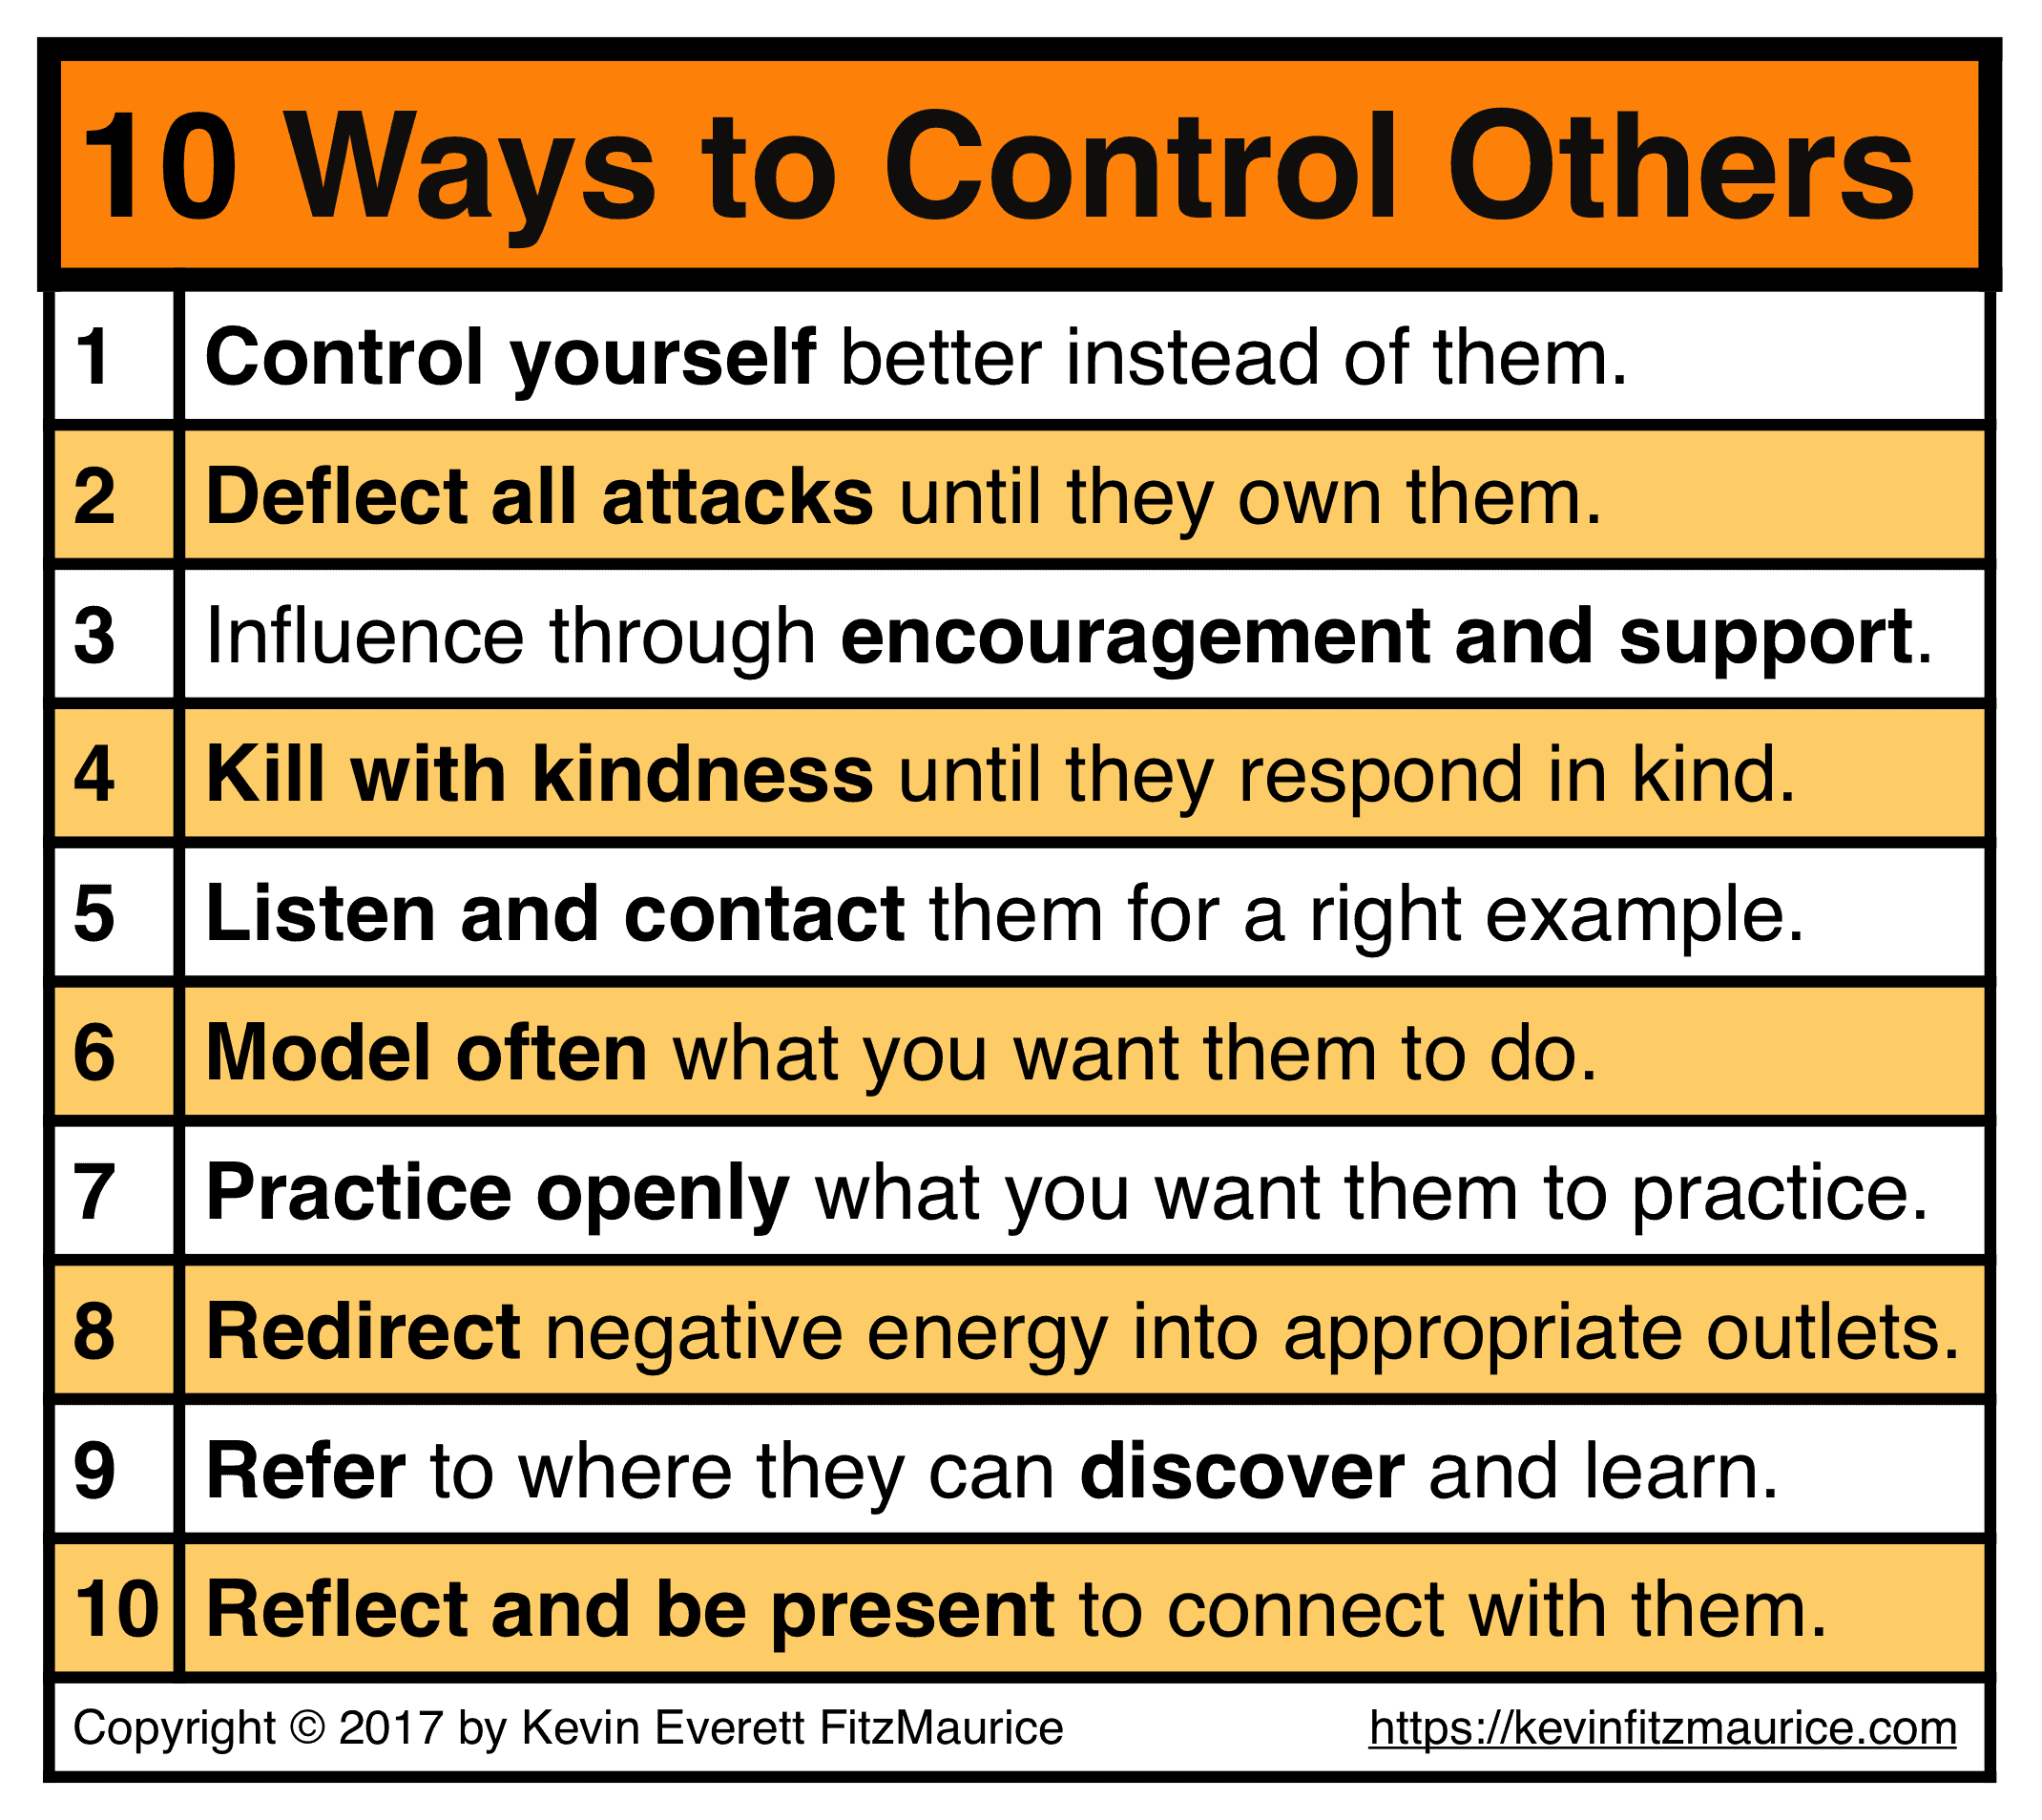 10 Ways to Control Others